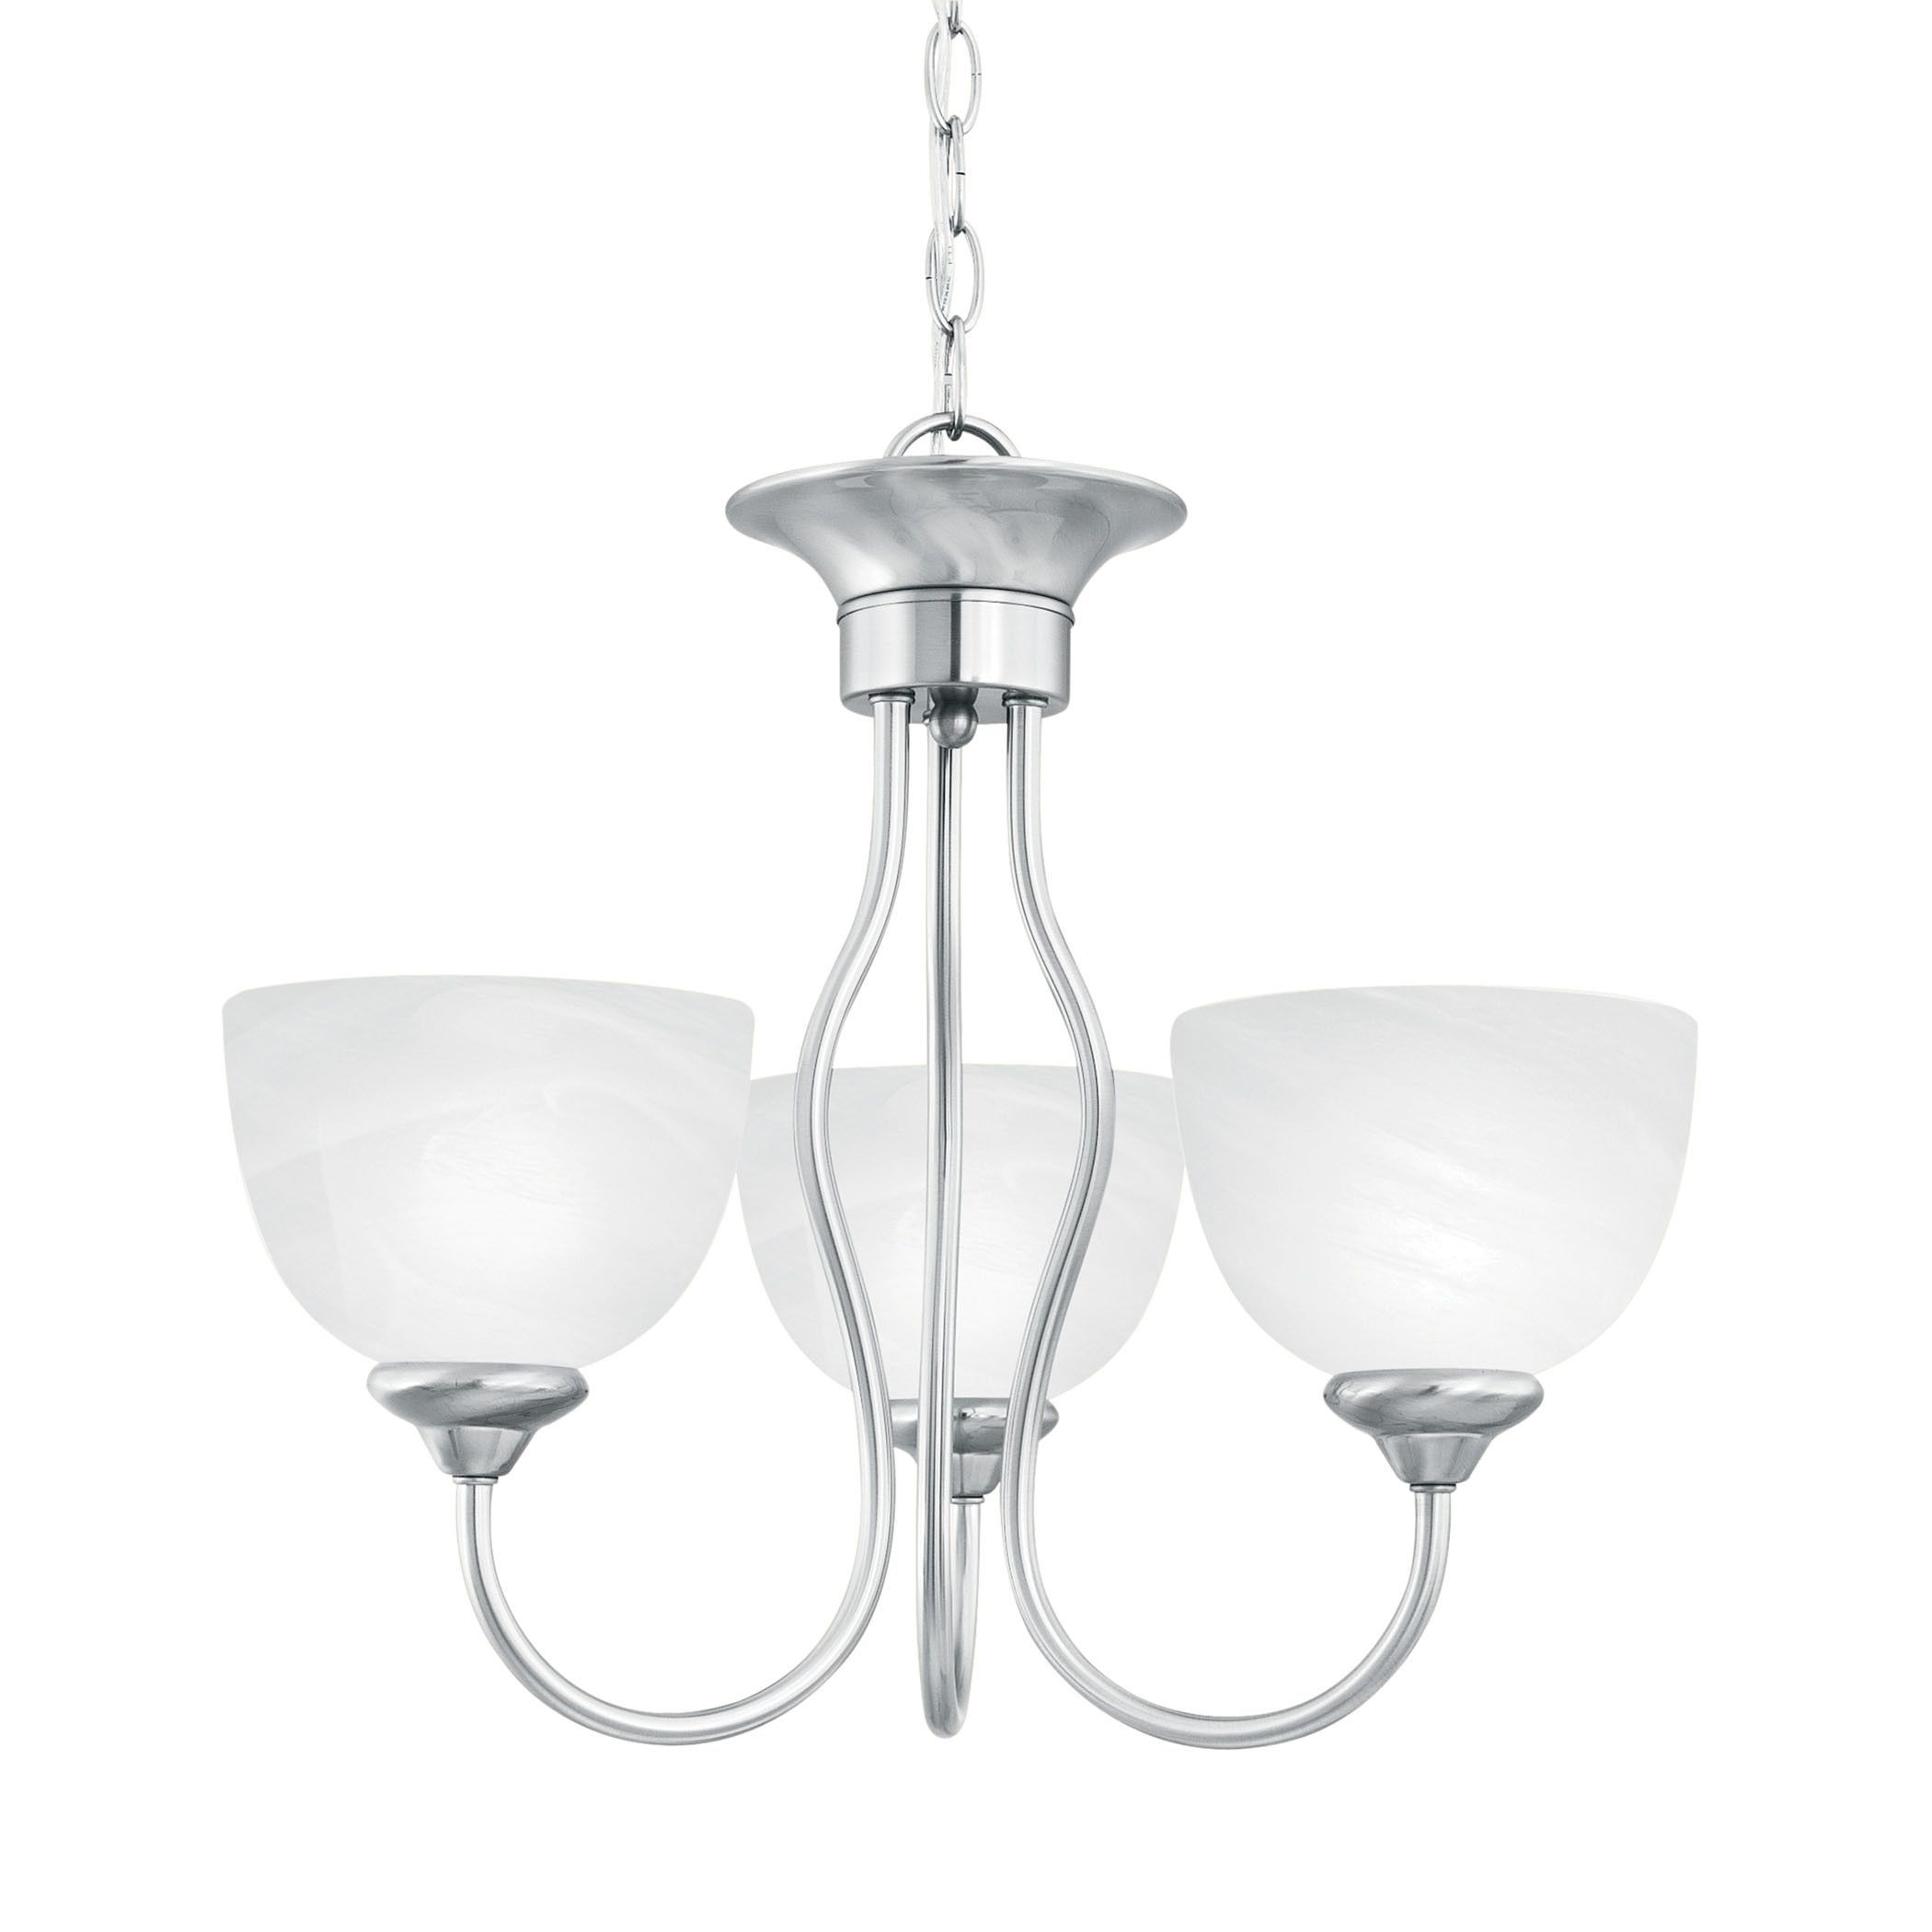 Thomas lighting sl801478 tahoe collection brushed nickel finish thomas lighting sl801478 tahoe collection brushed nickel finish traditional chandelier arubaitofo Image collections